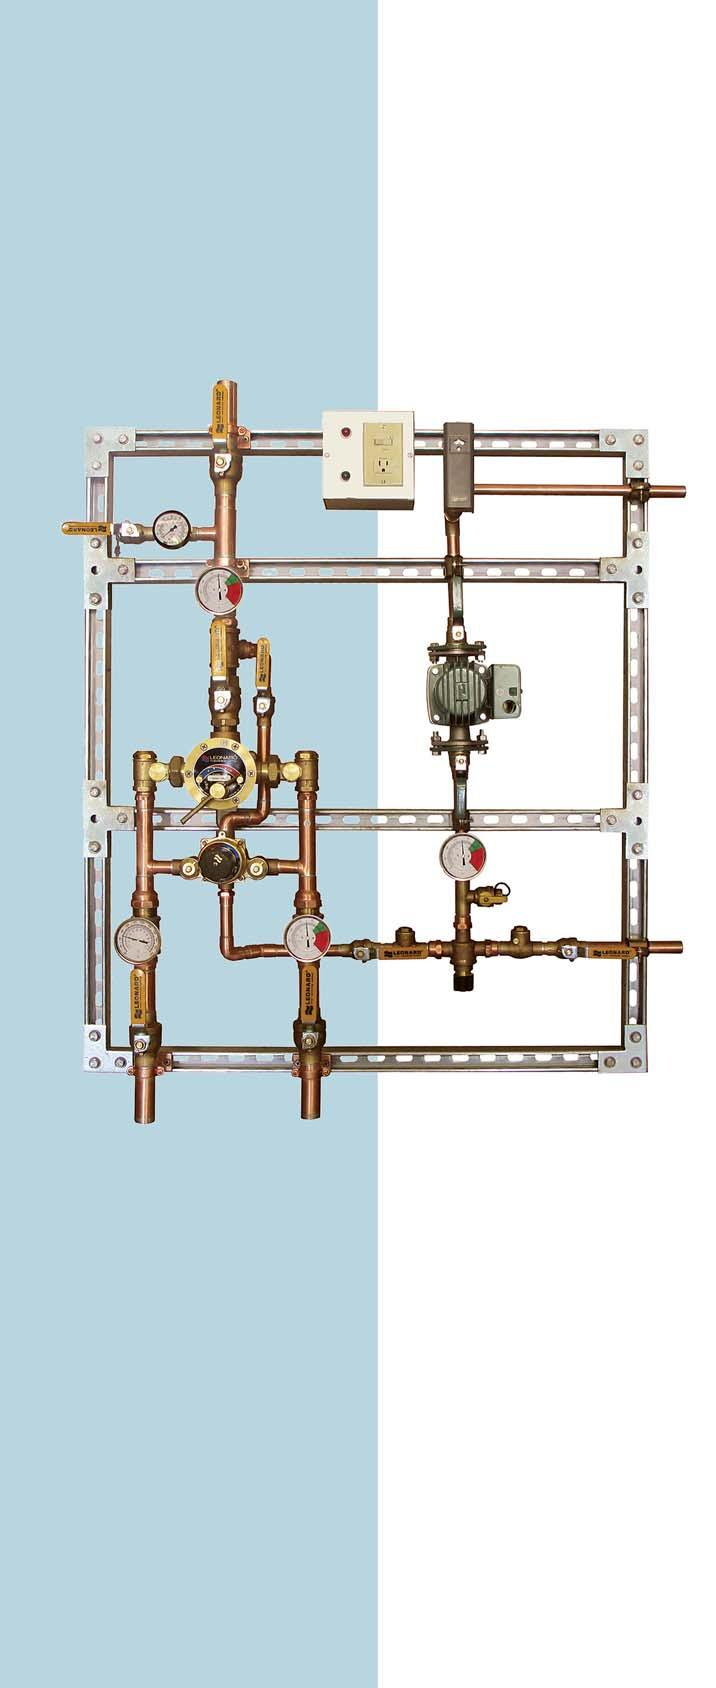 Complete Water Temperature Control System Pdf For An Apollo Hydronic Air Handler That Has A Wiring Diagram The Transcription